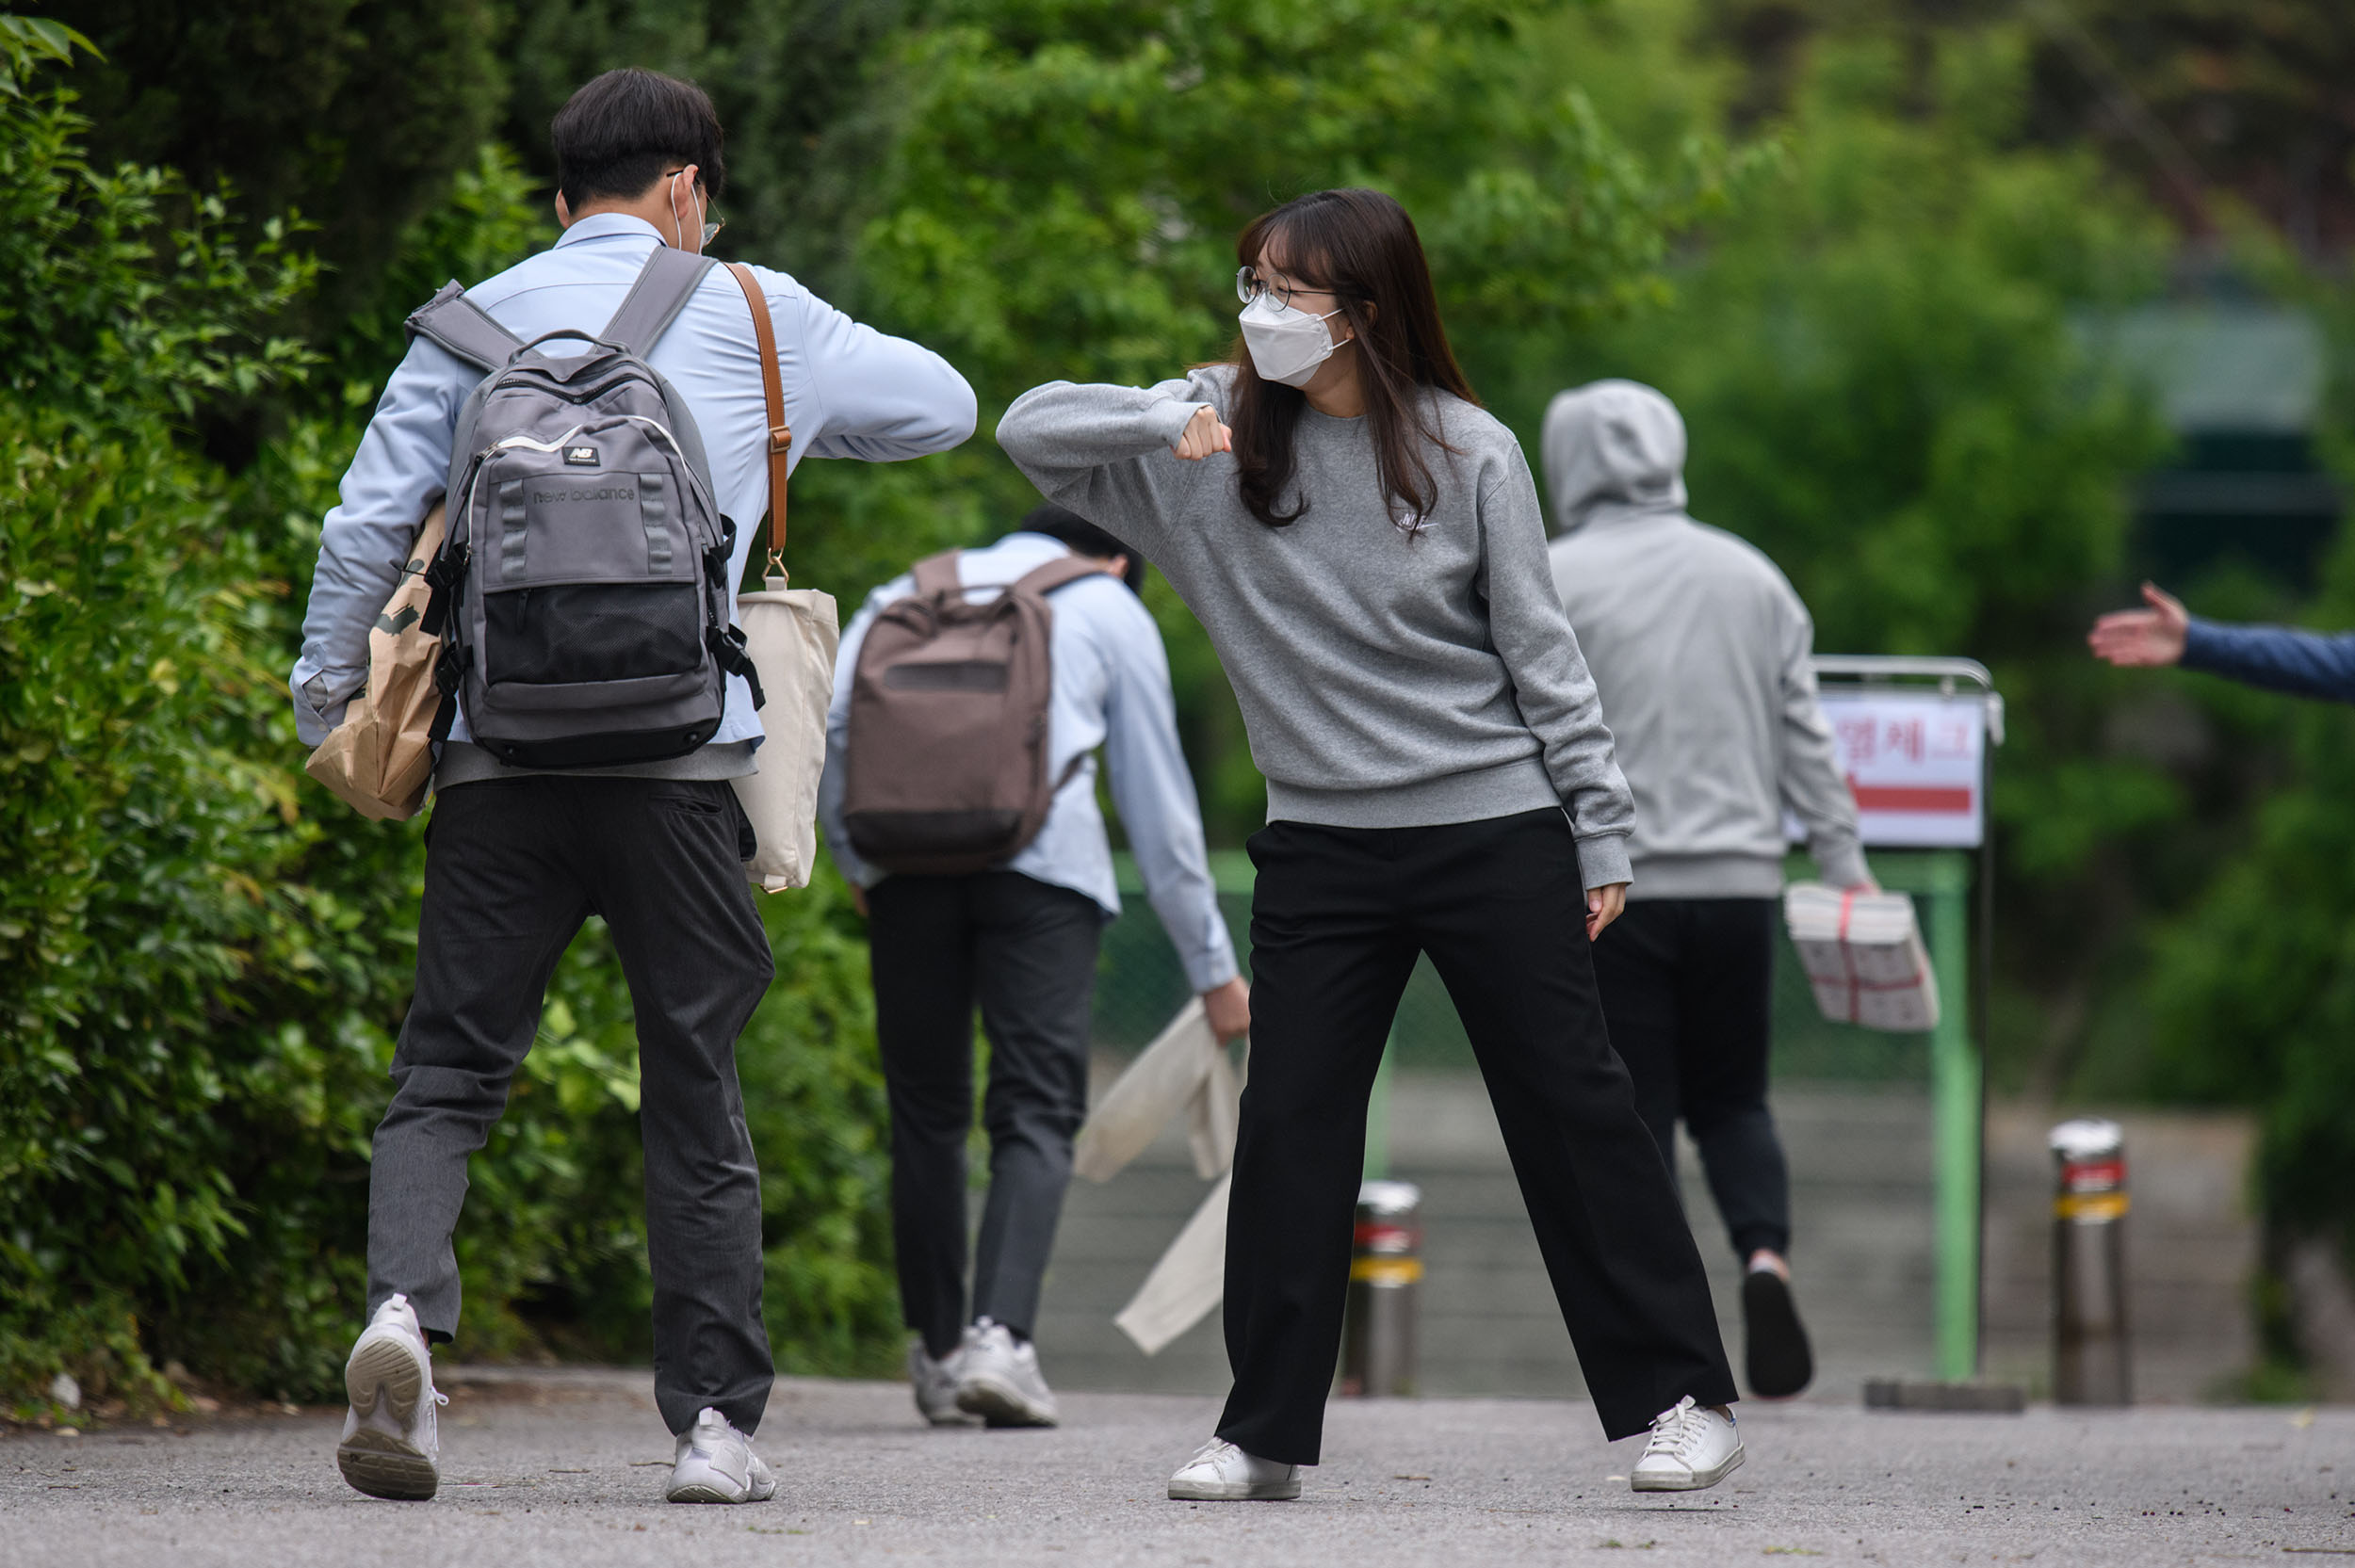 A staff member greets a student at a high school in Seoul, South Korea, on May 20.